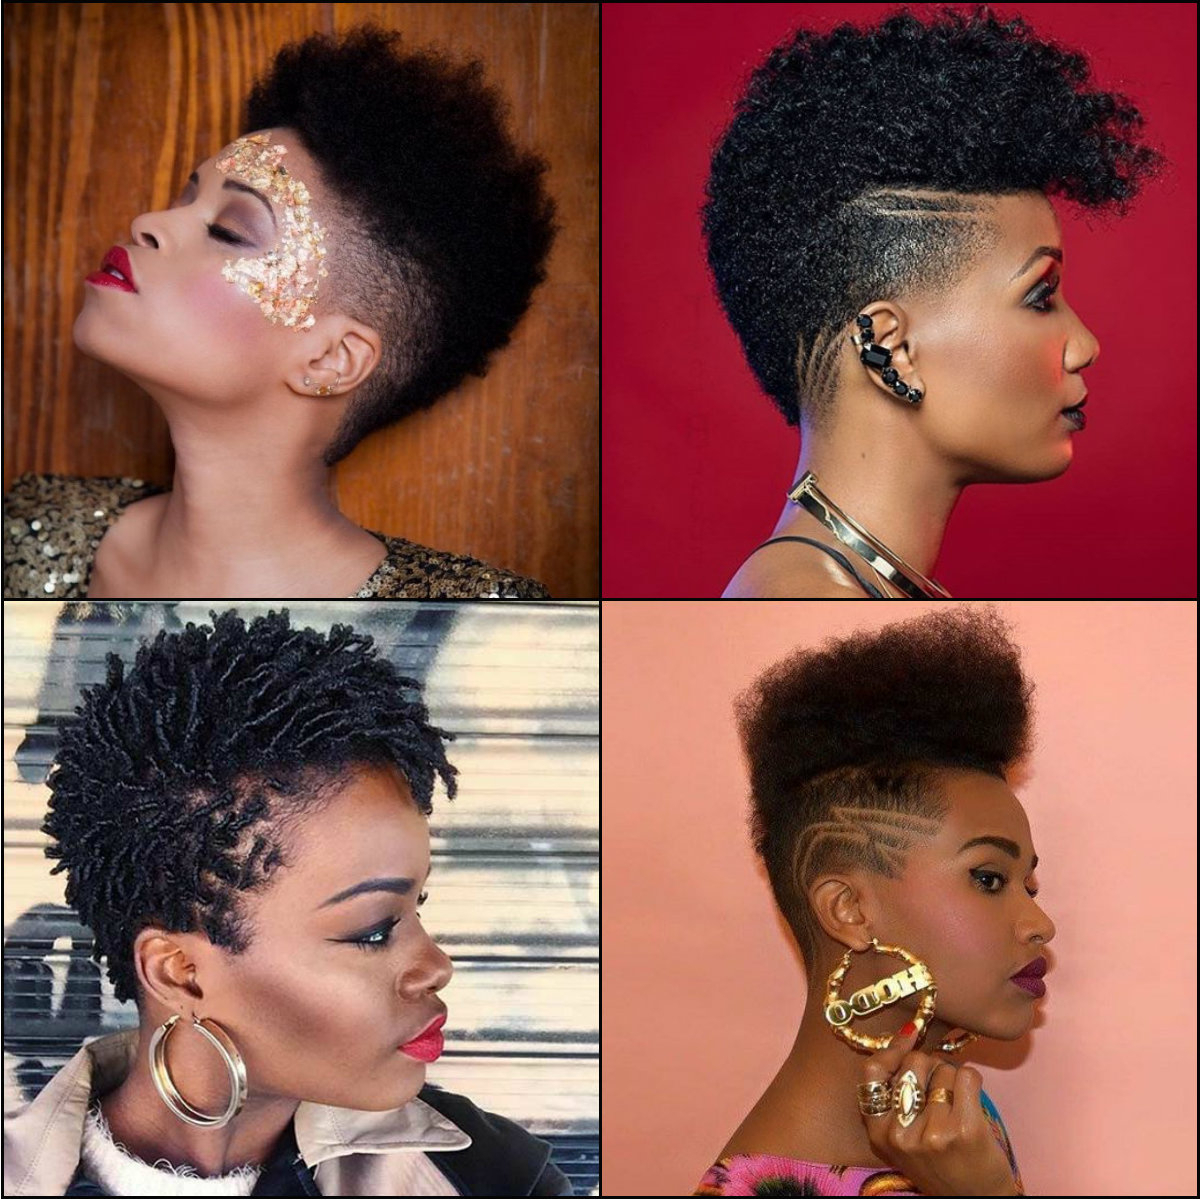 Black Women Fade Haircuts To Look Edgy And Sexy (View 7 of 20)